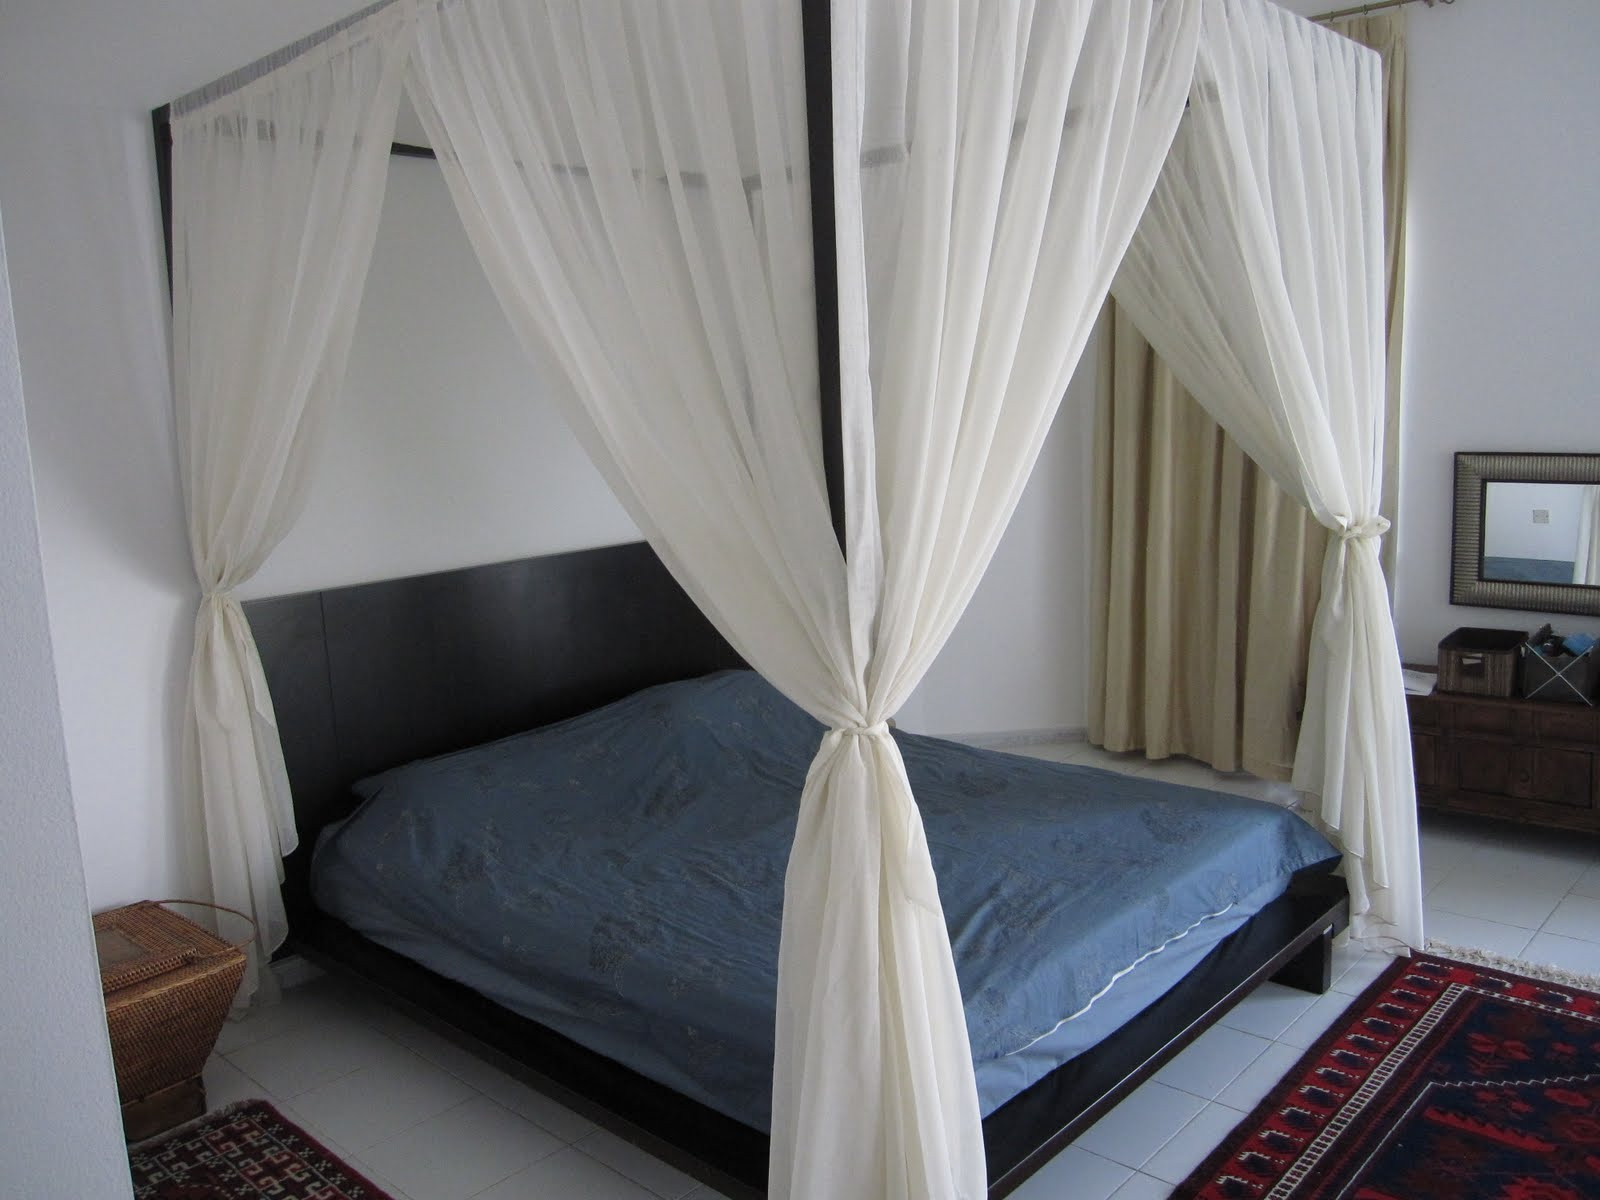 Best ideas about DIY Canopy Bed Curtains . Save or Pin DIY Canopy Bed from PVC Pipes MidCityEast Now.